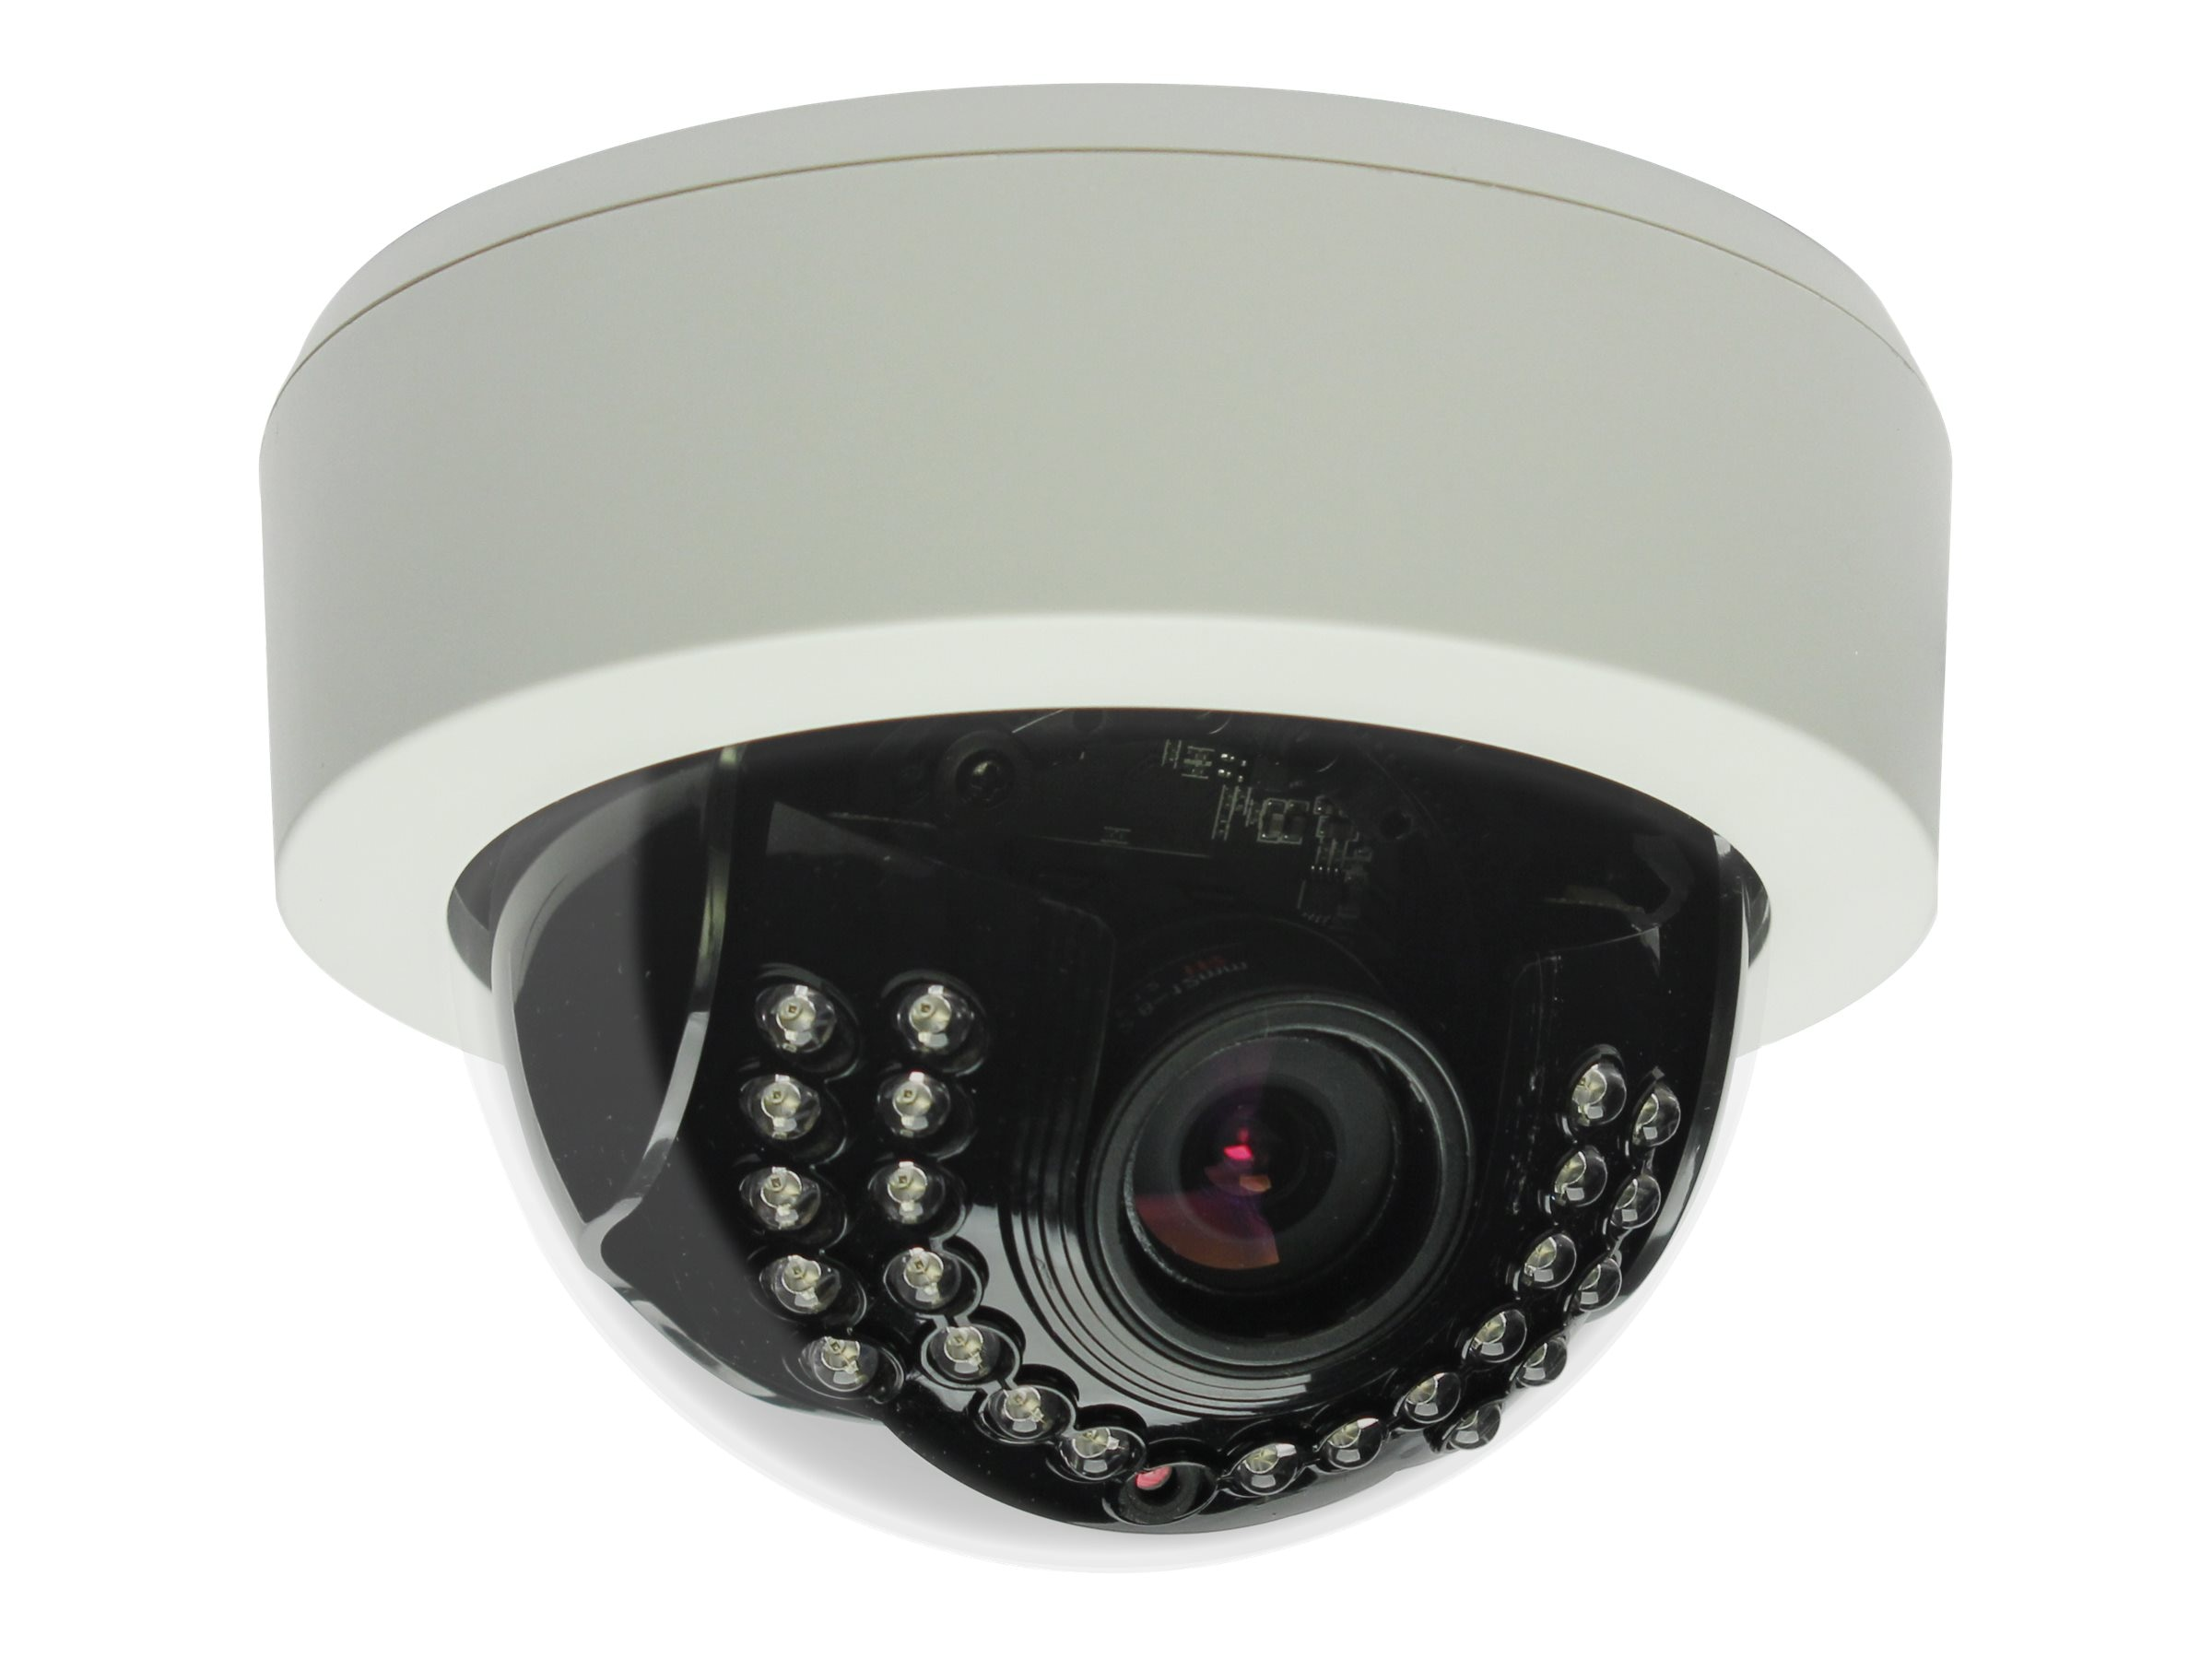 Toshiba 960H Indoor Day Night True WDR Analog Dome Camera, IKS-D207